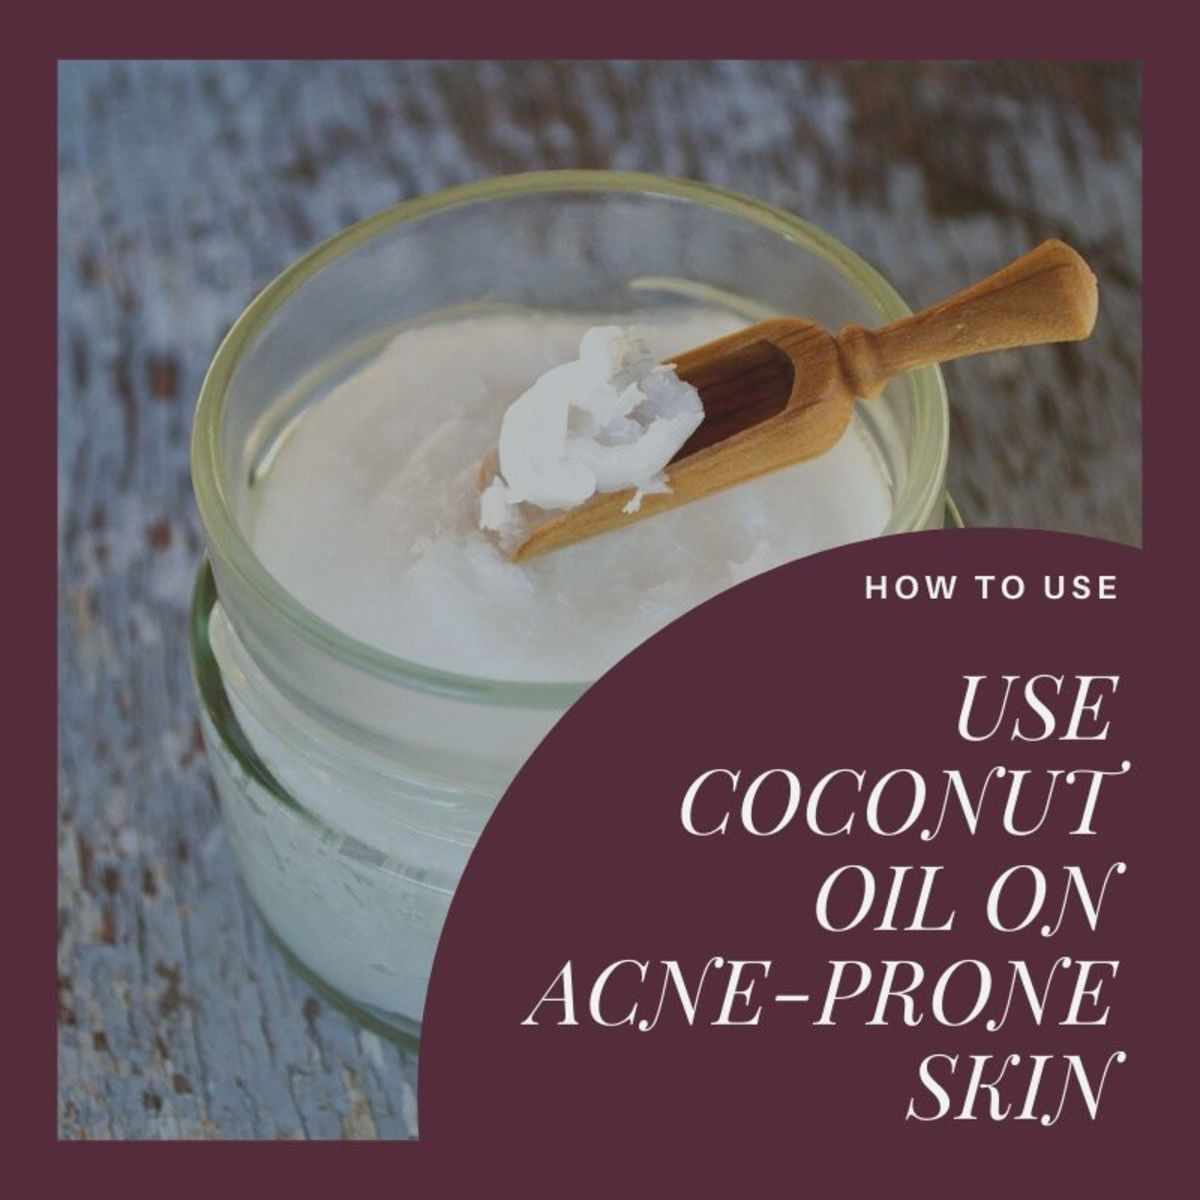 Coconut Oil for Acne: Does It Work?